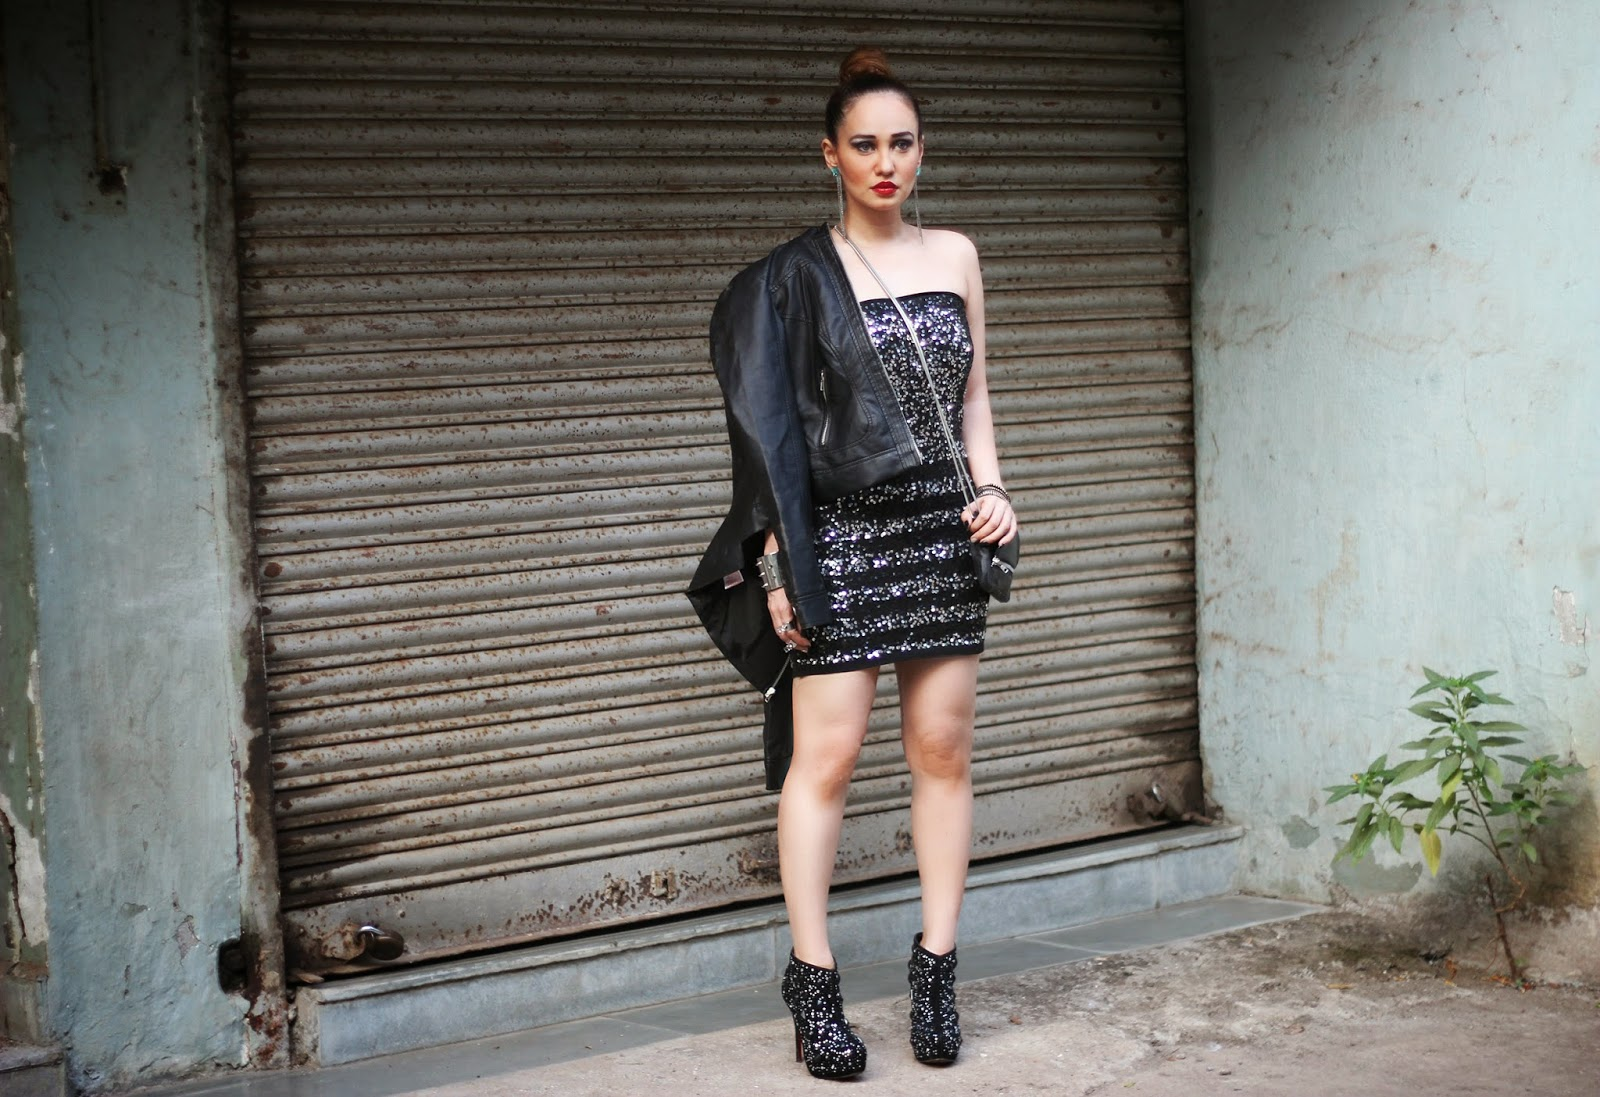 Sequin Dress by Vero Moda Marquee by Karan Johar